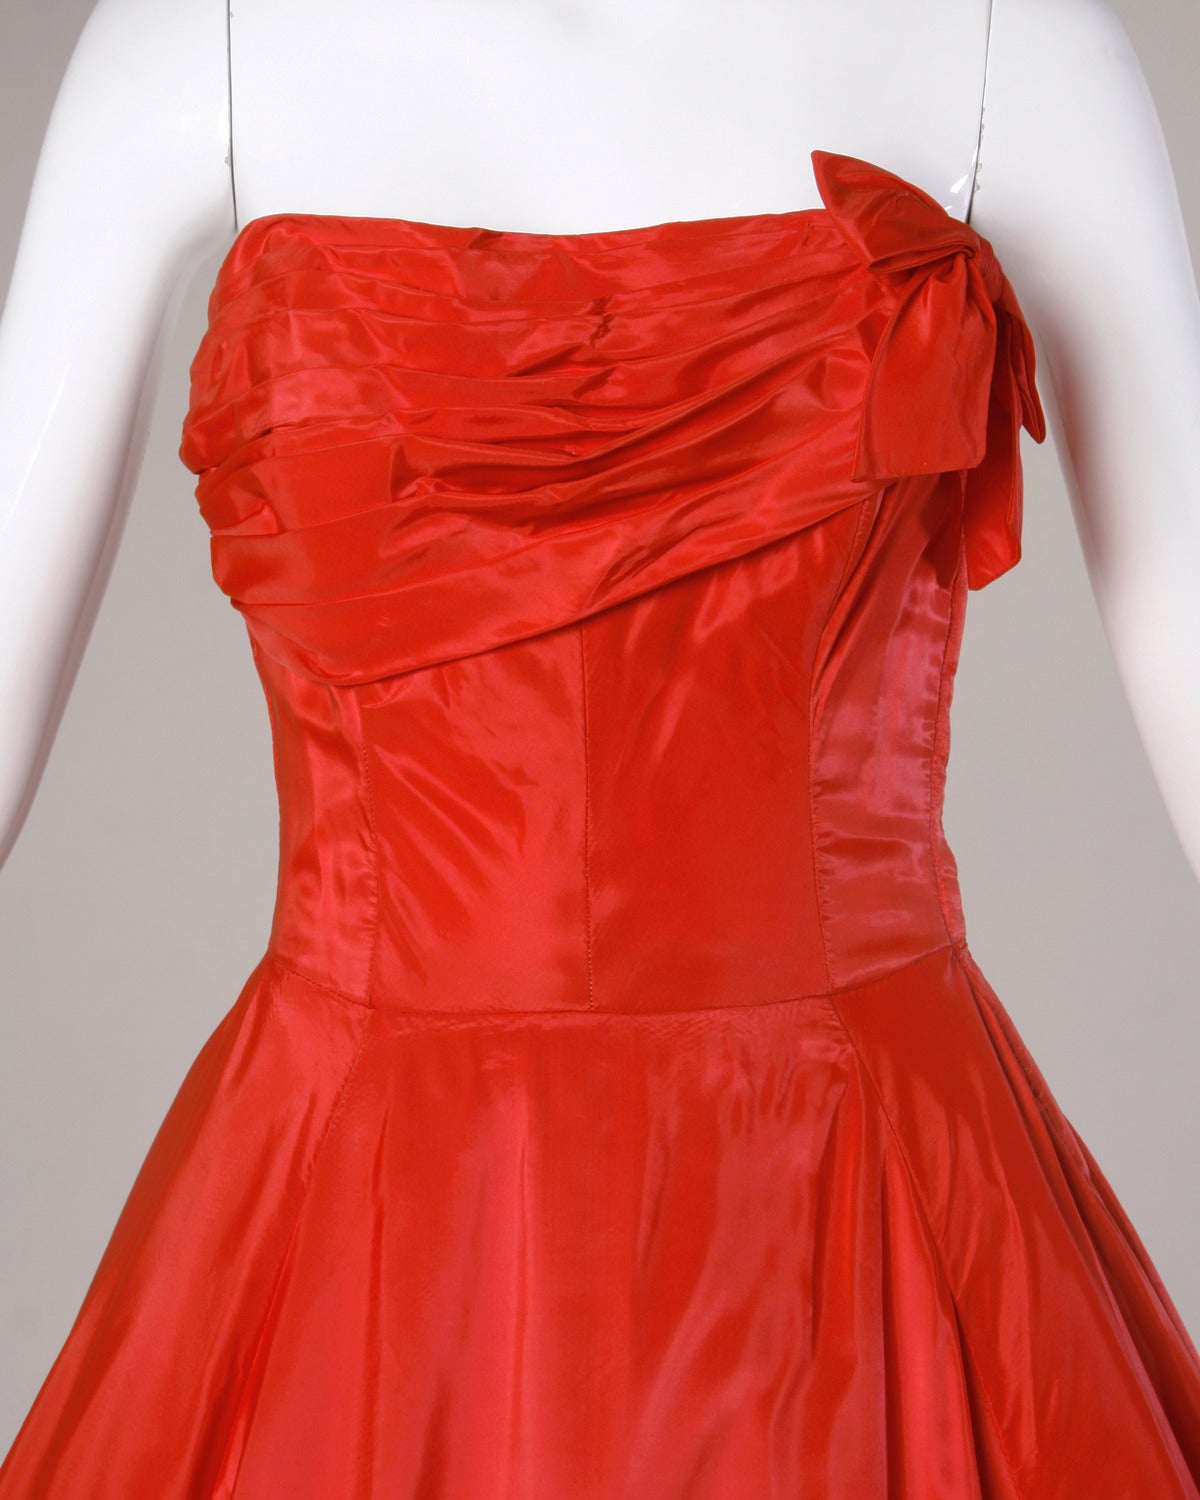 1950s Vintage Red Taffeta Full Sweep Party Dress with Bubble Hem 2